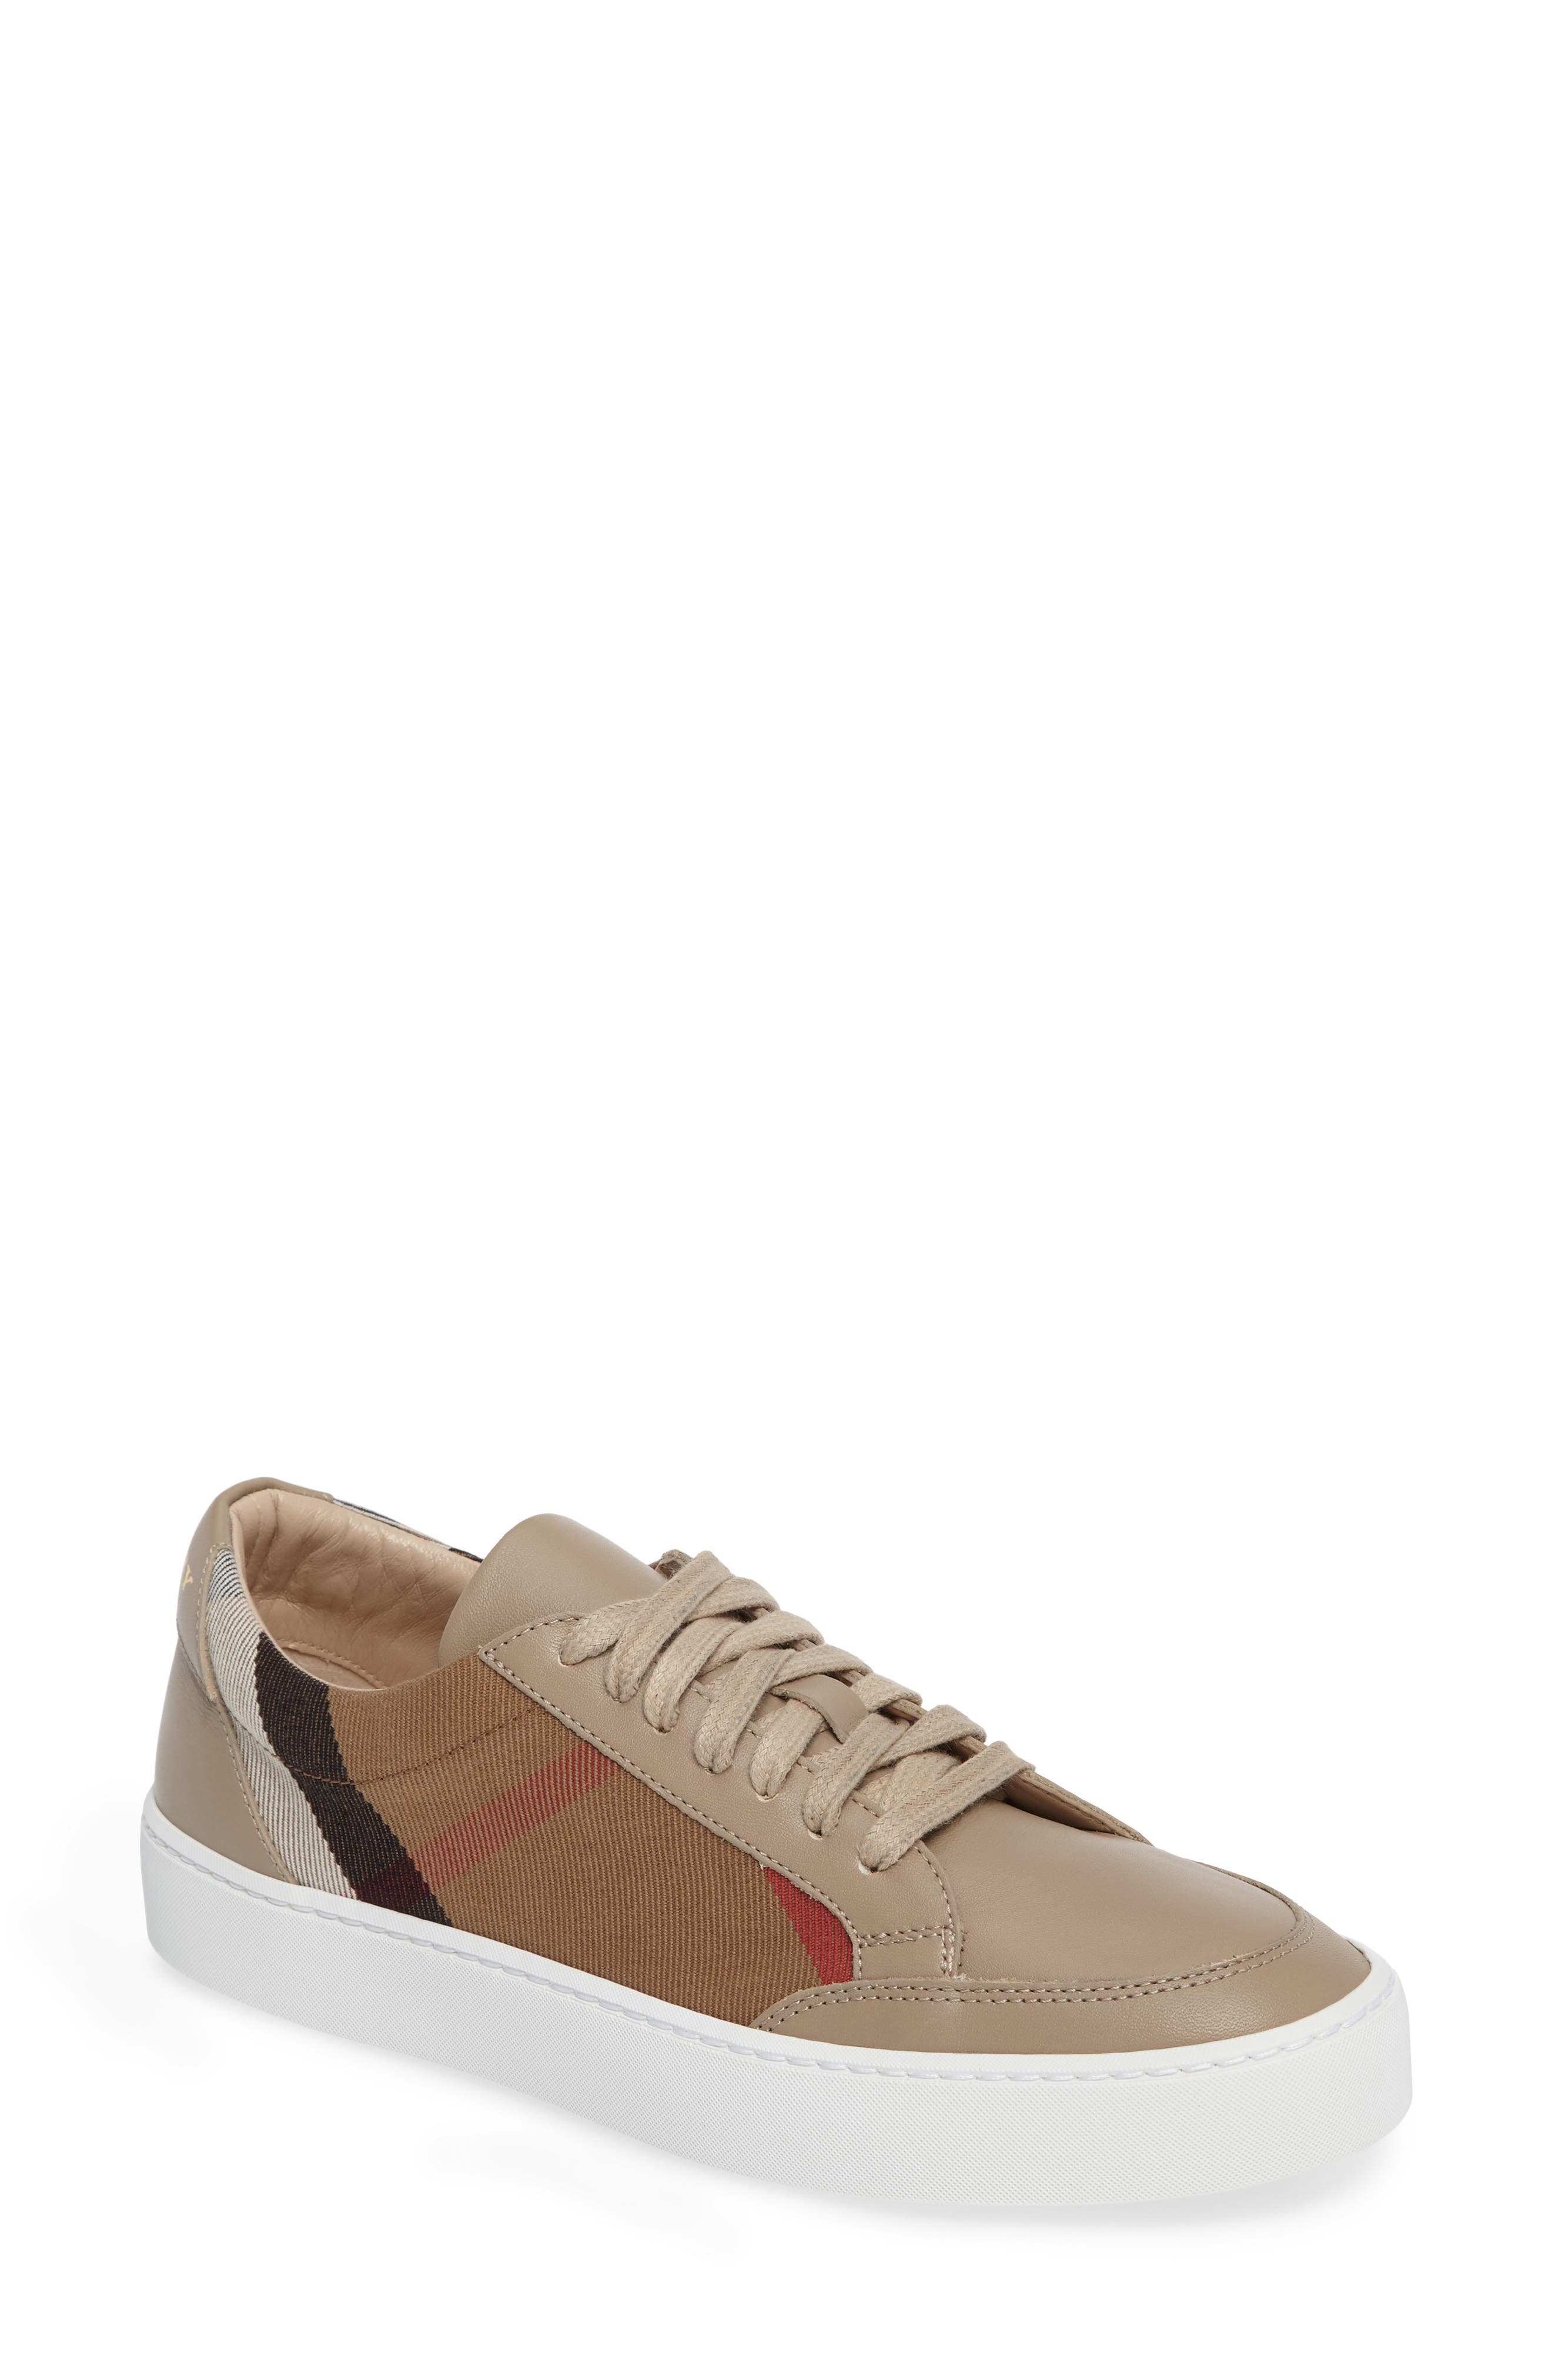 Salmond Sneaker,                             Main thumbnail 1, color,                             Nude